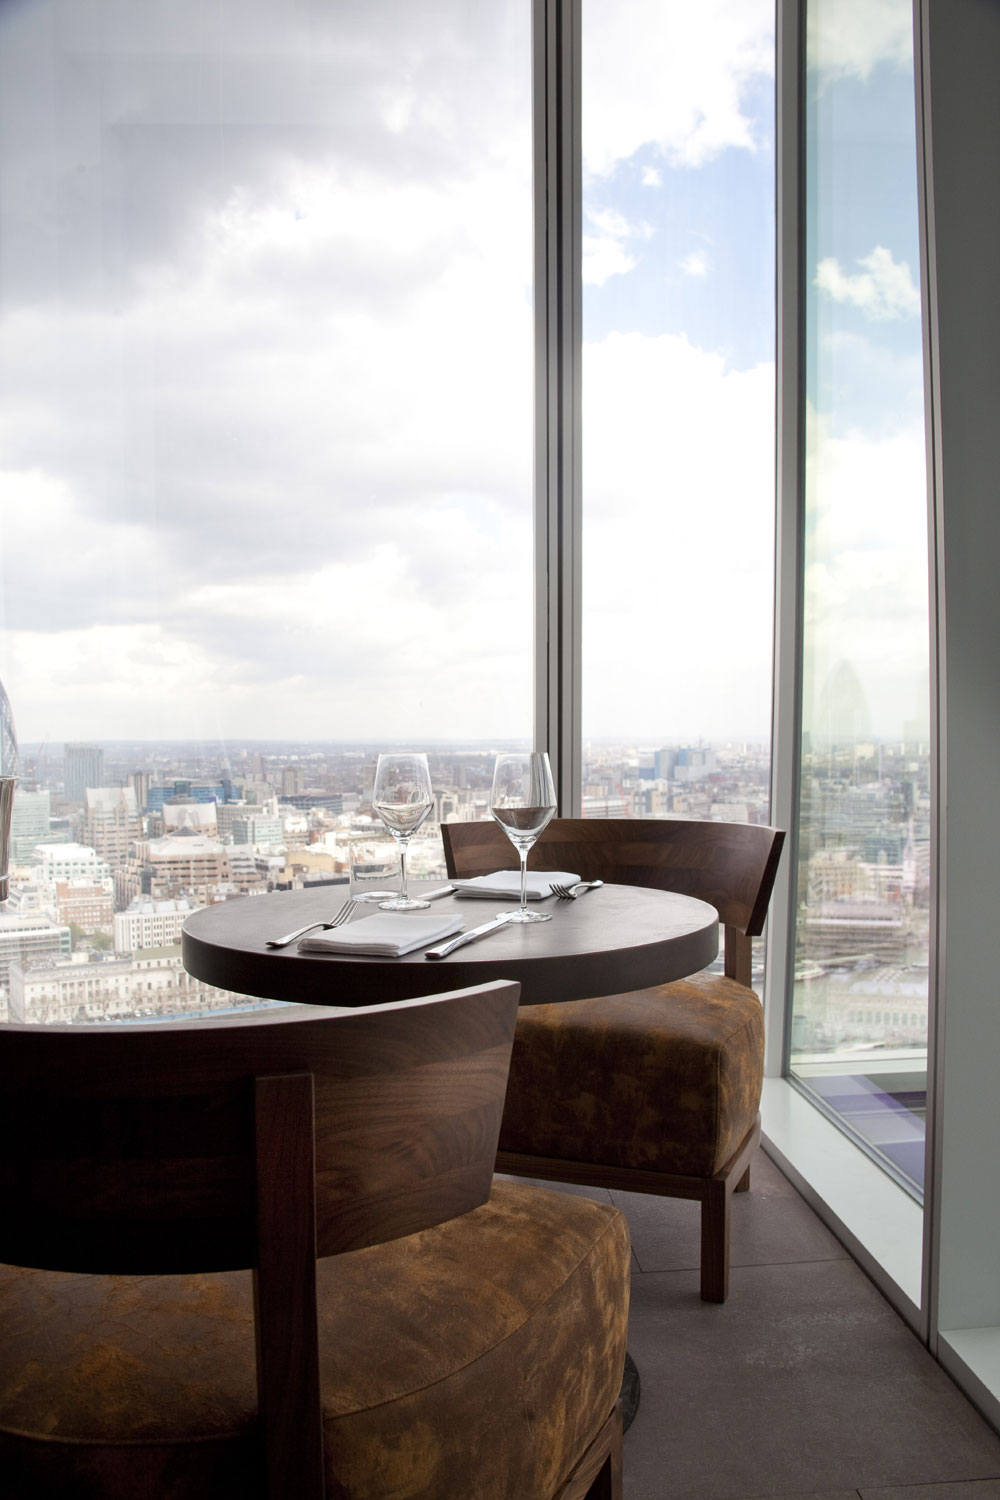 Oblix East at The Shard - London